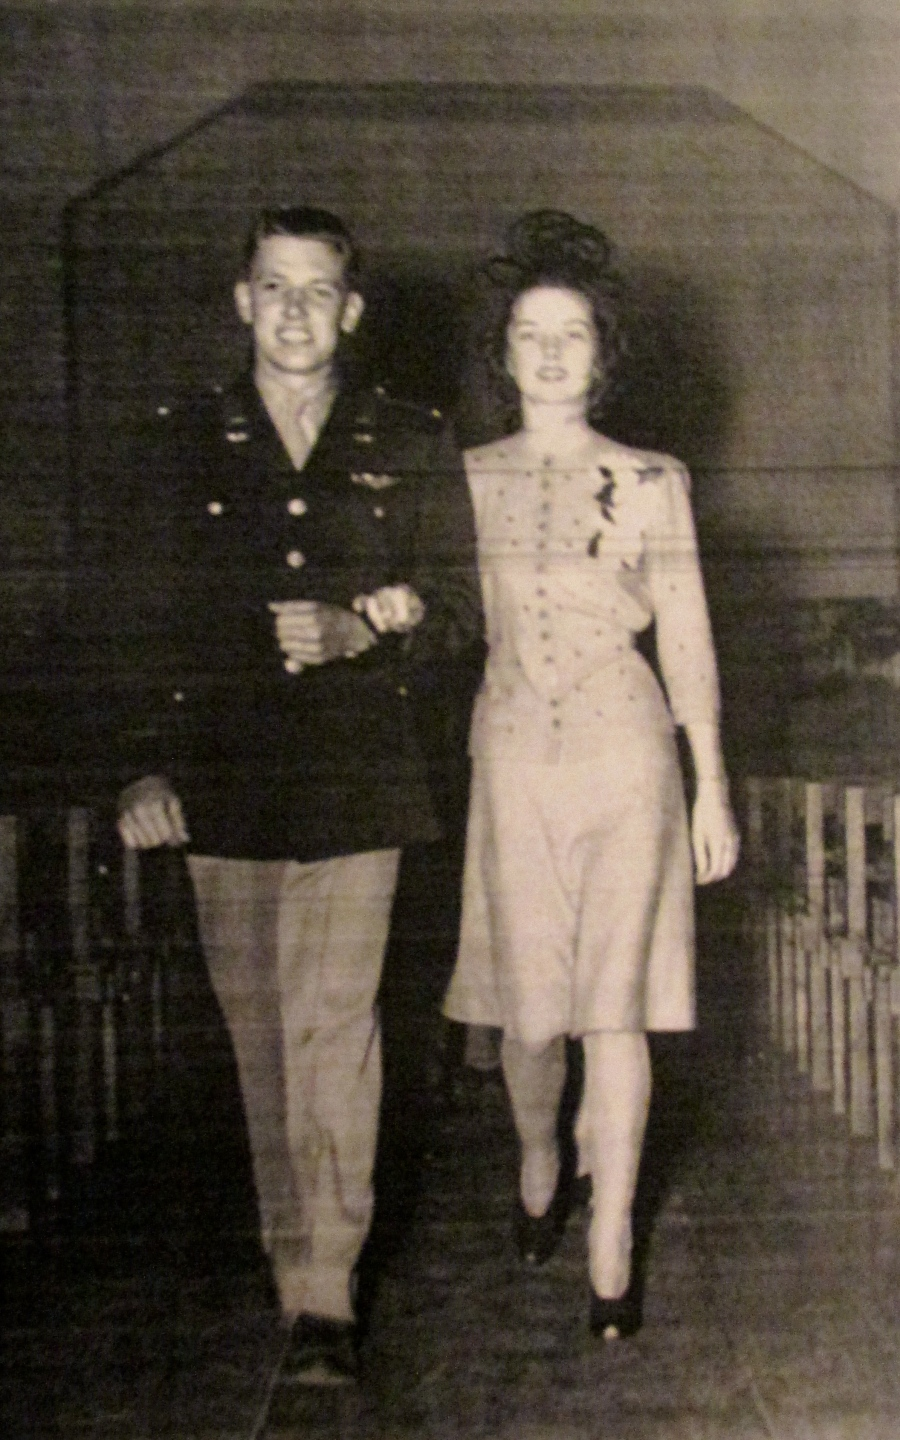 The day 2nd Lt. haase received his wings he married Jean. The couple walks down the aisle in a brief wedding ceremony on Oct. 9, 1941. This year they celebrated their 65th wedding anniversary. Photo provided